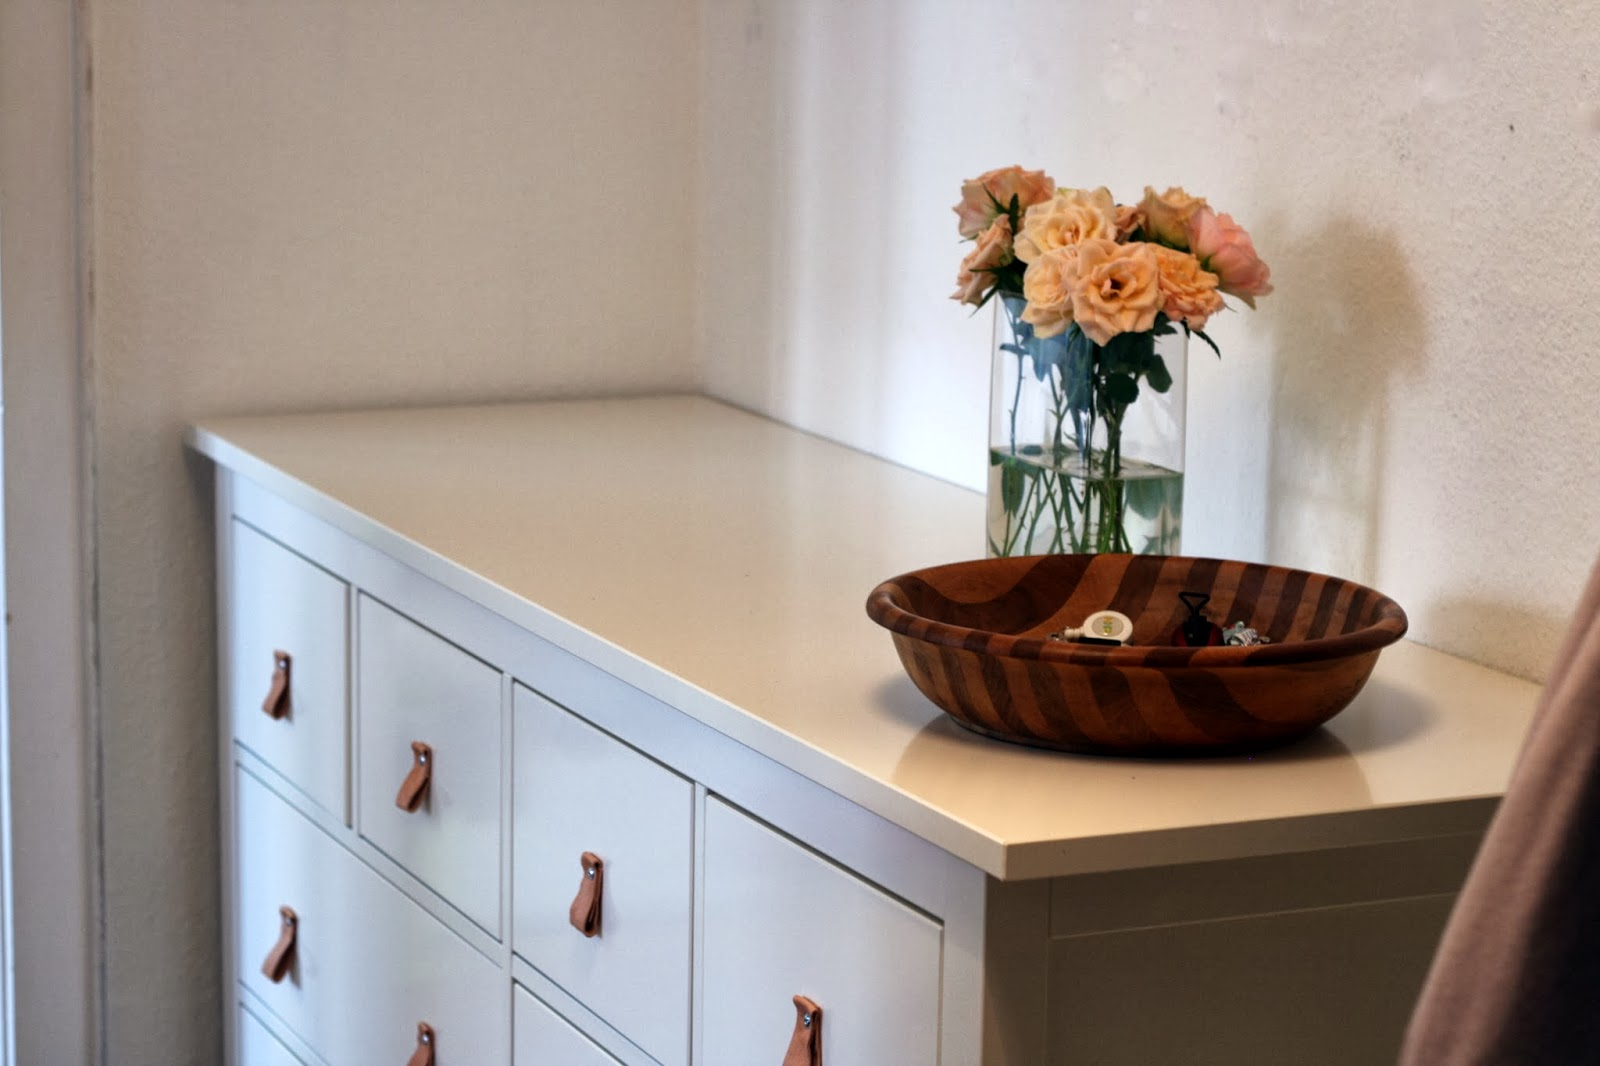 Kueche Sideboard Diy Diy Griffe Kommoden And Sideboards Handsome Powered By